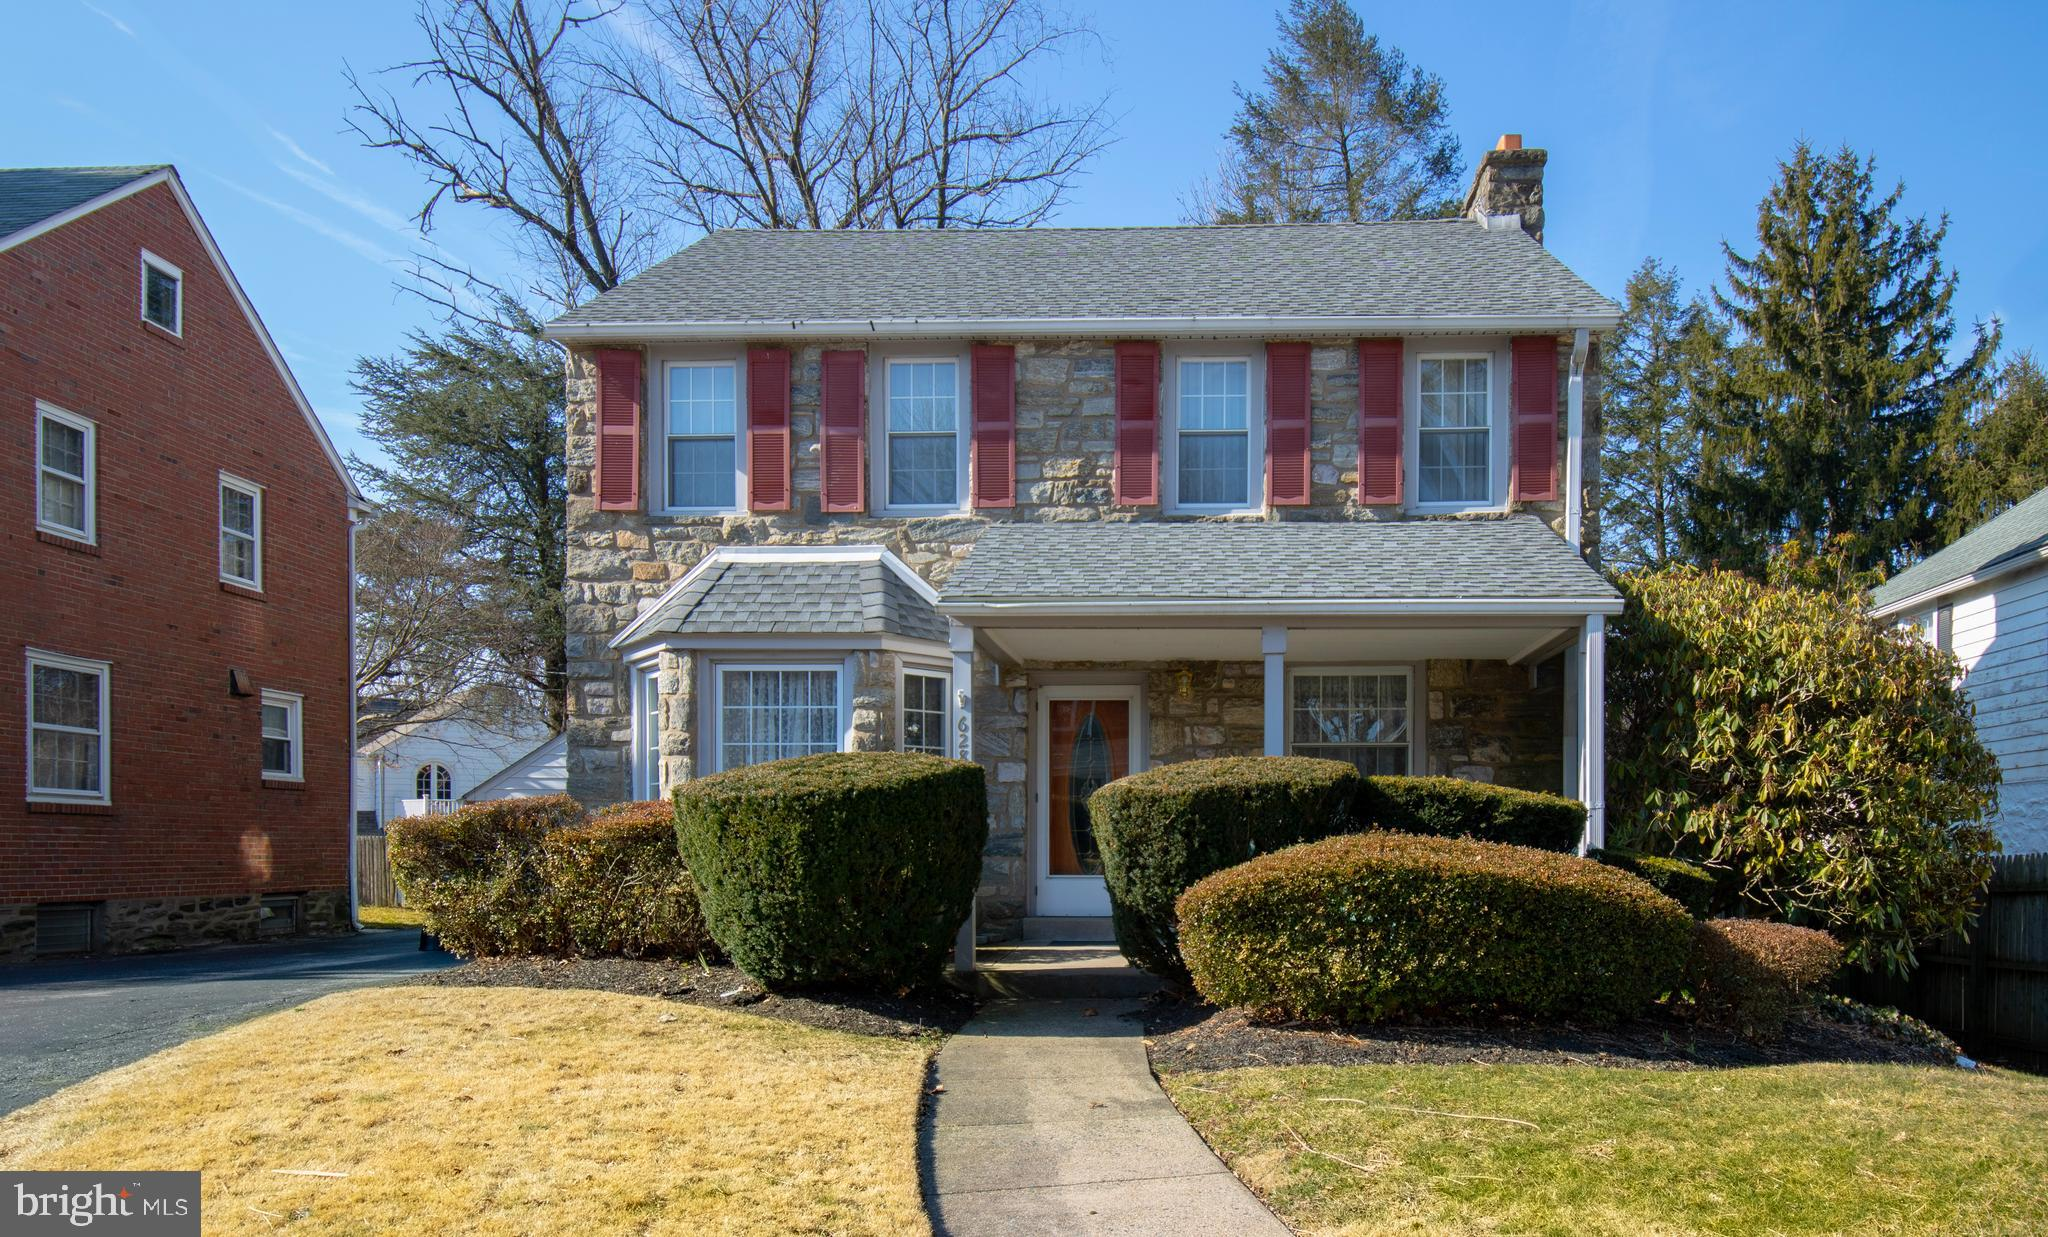 628 LUKENS AVENUE, UPPER DARBY, PA 19082